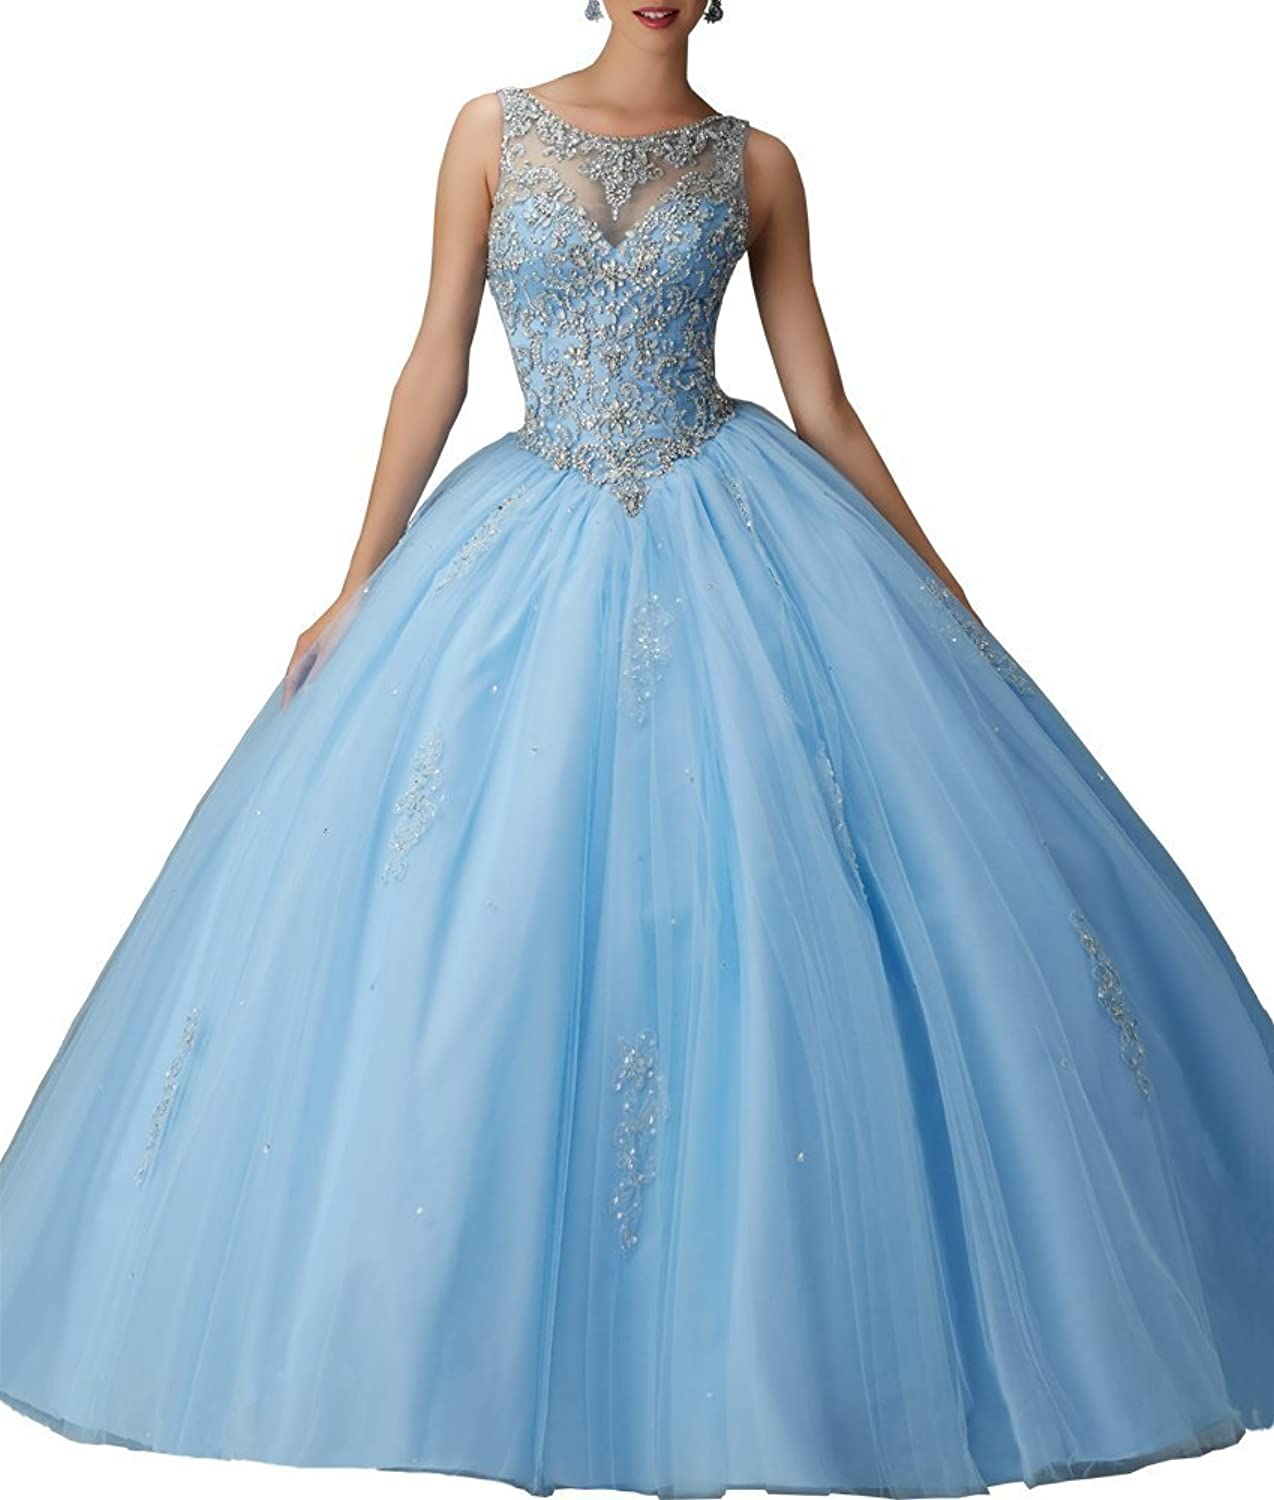 Amazon.com: Prom Queen Women\'s A-Line Beaded Ball Gown Prom ...